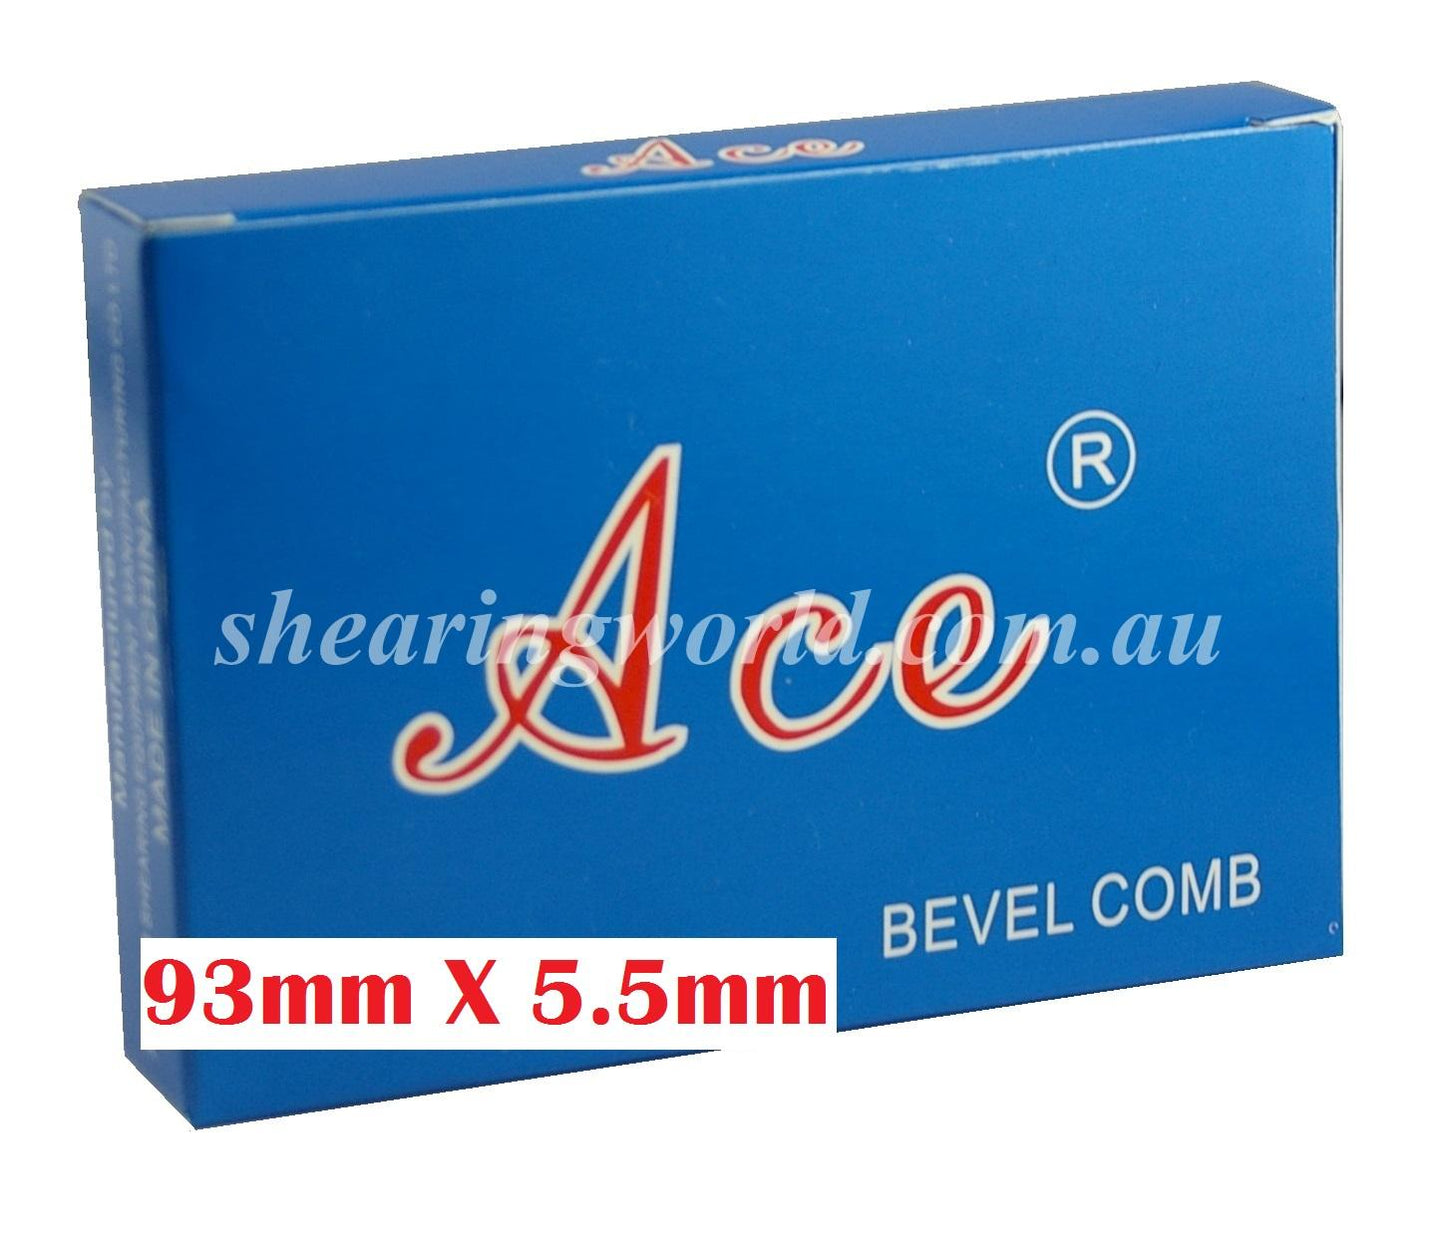 C93mm x 5.5mm (BOX OF 5)